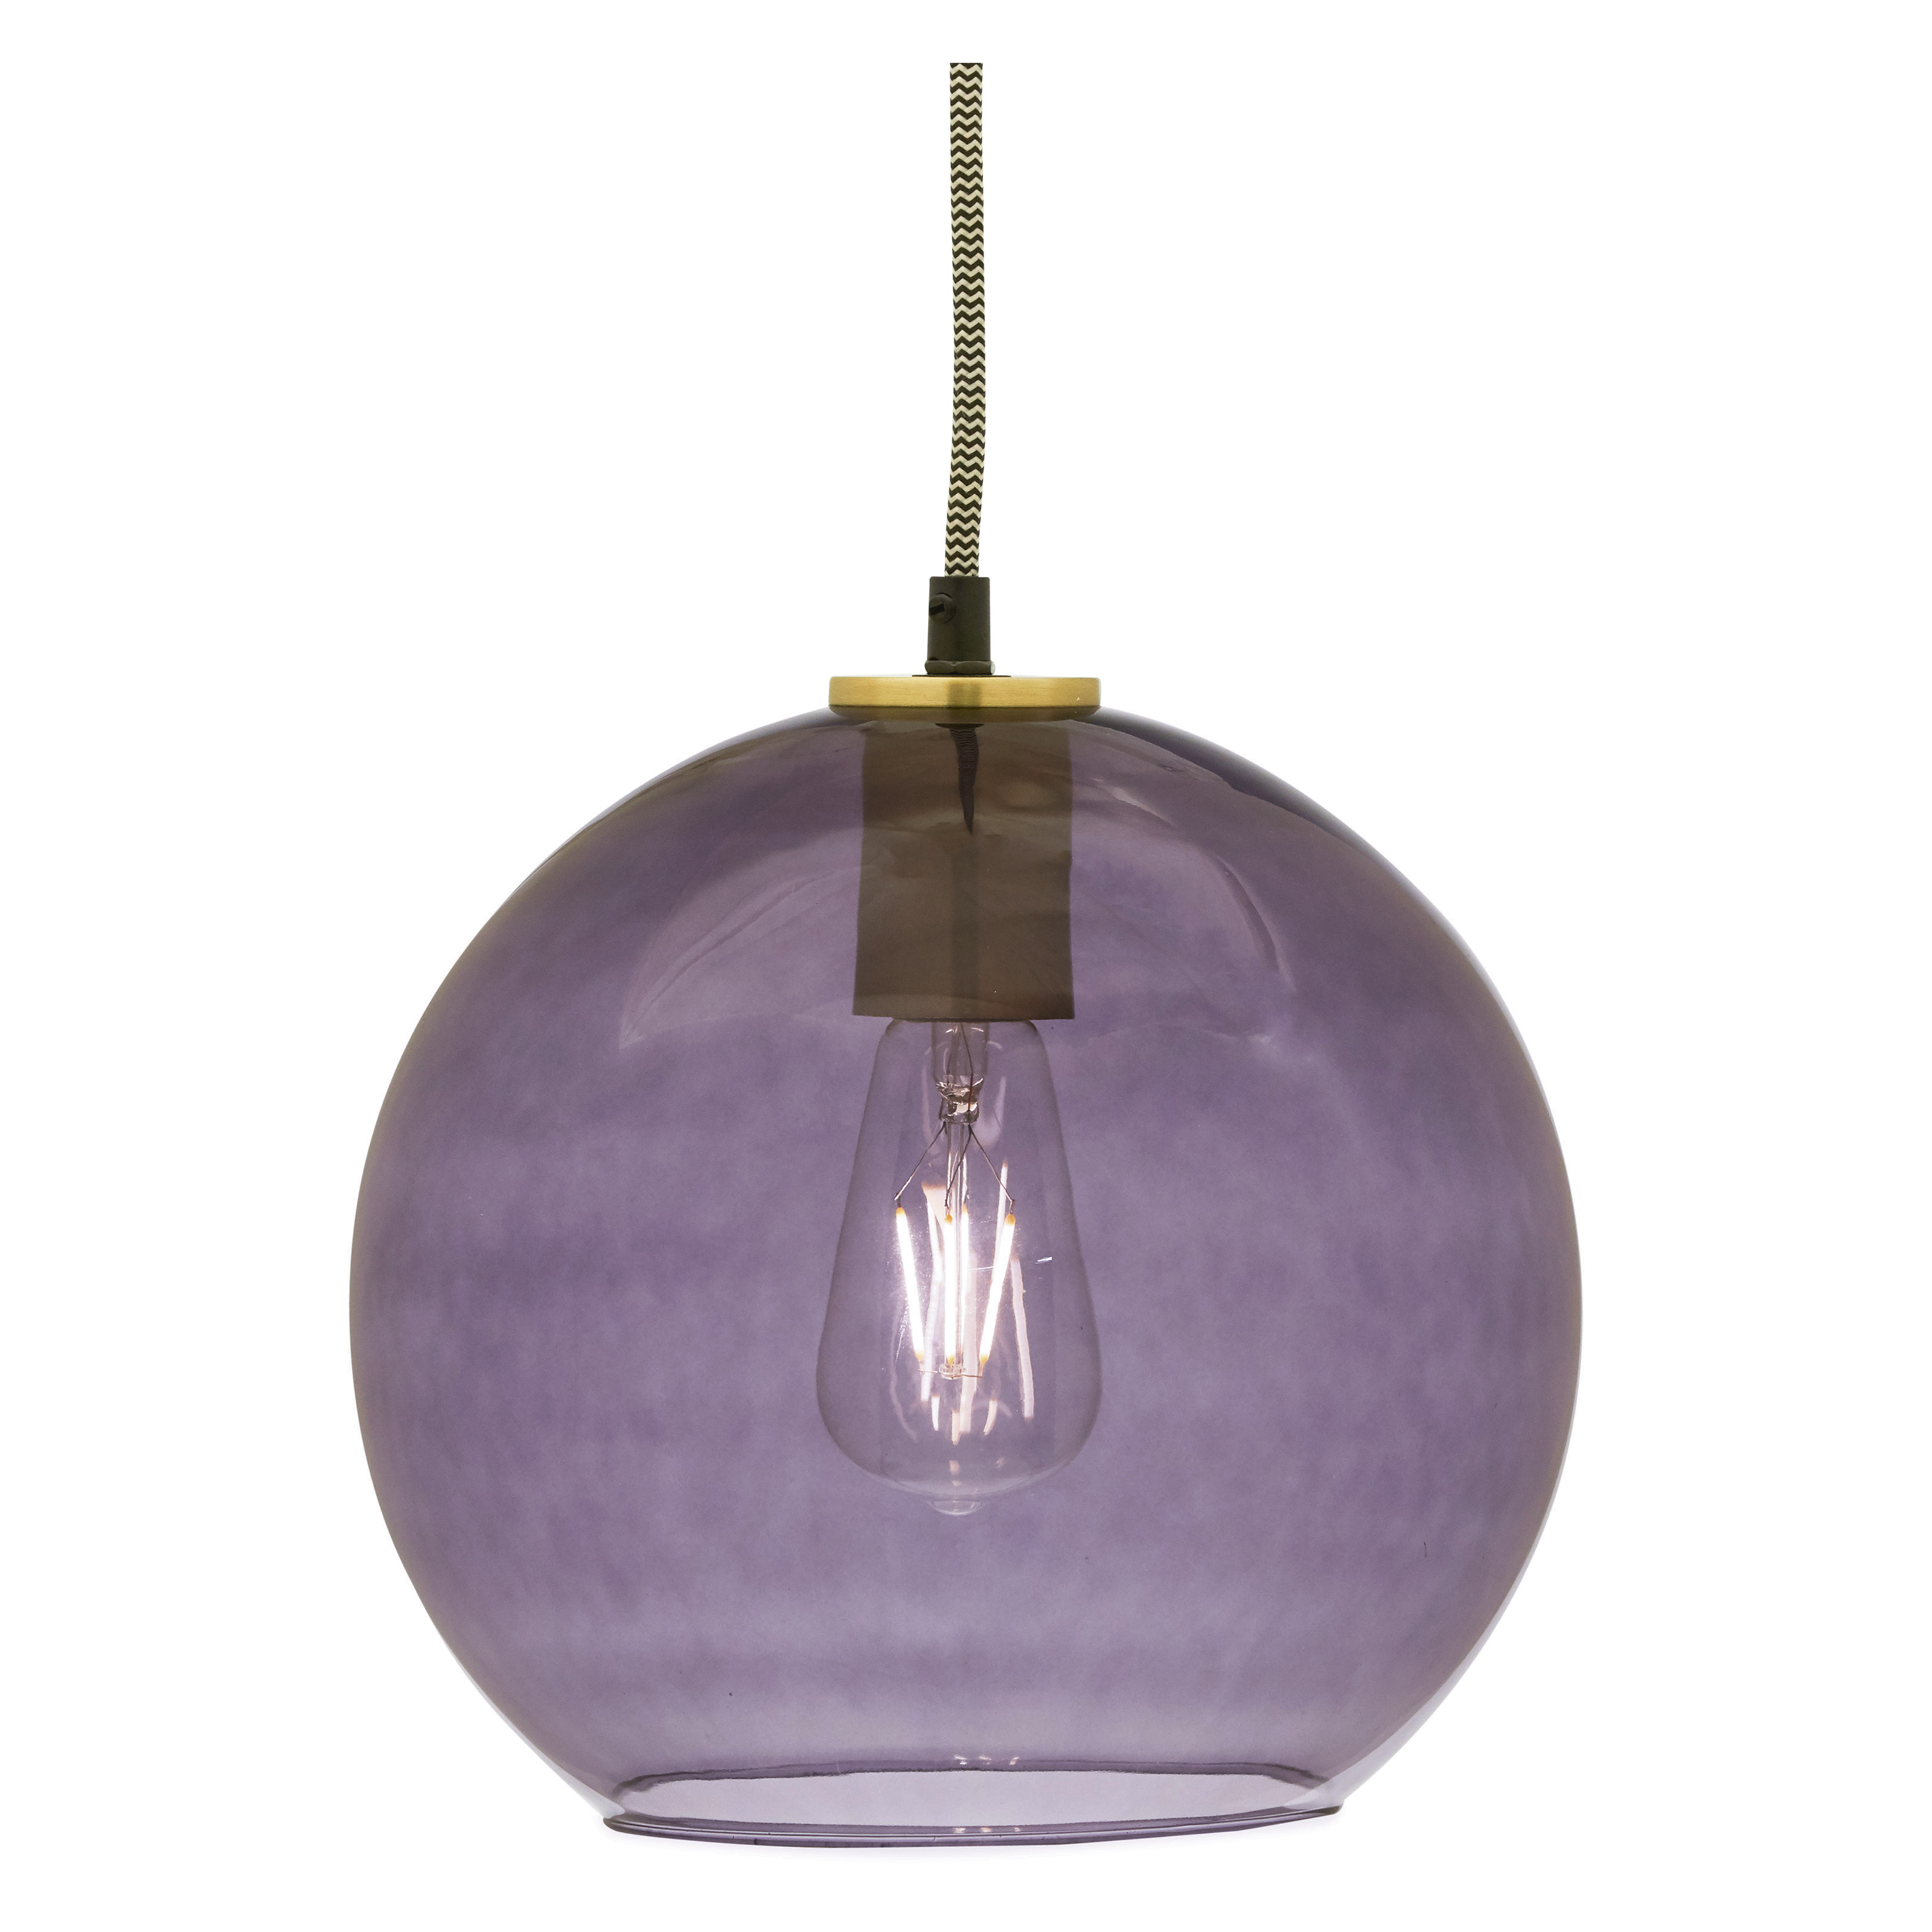 Best And Newest Lighting & Lighting Fixtures – Walmart Throughout Dailey 4 Light Drum Chandeliers (View 4 of 25)